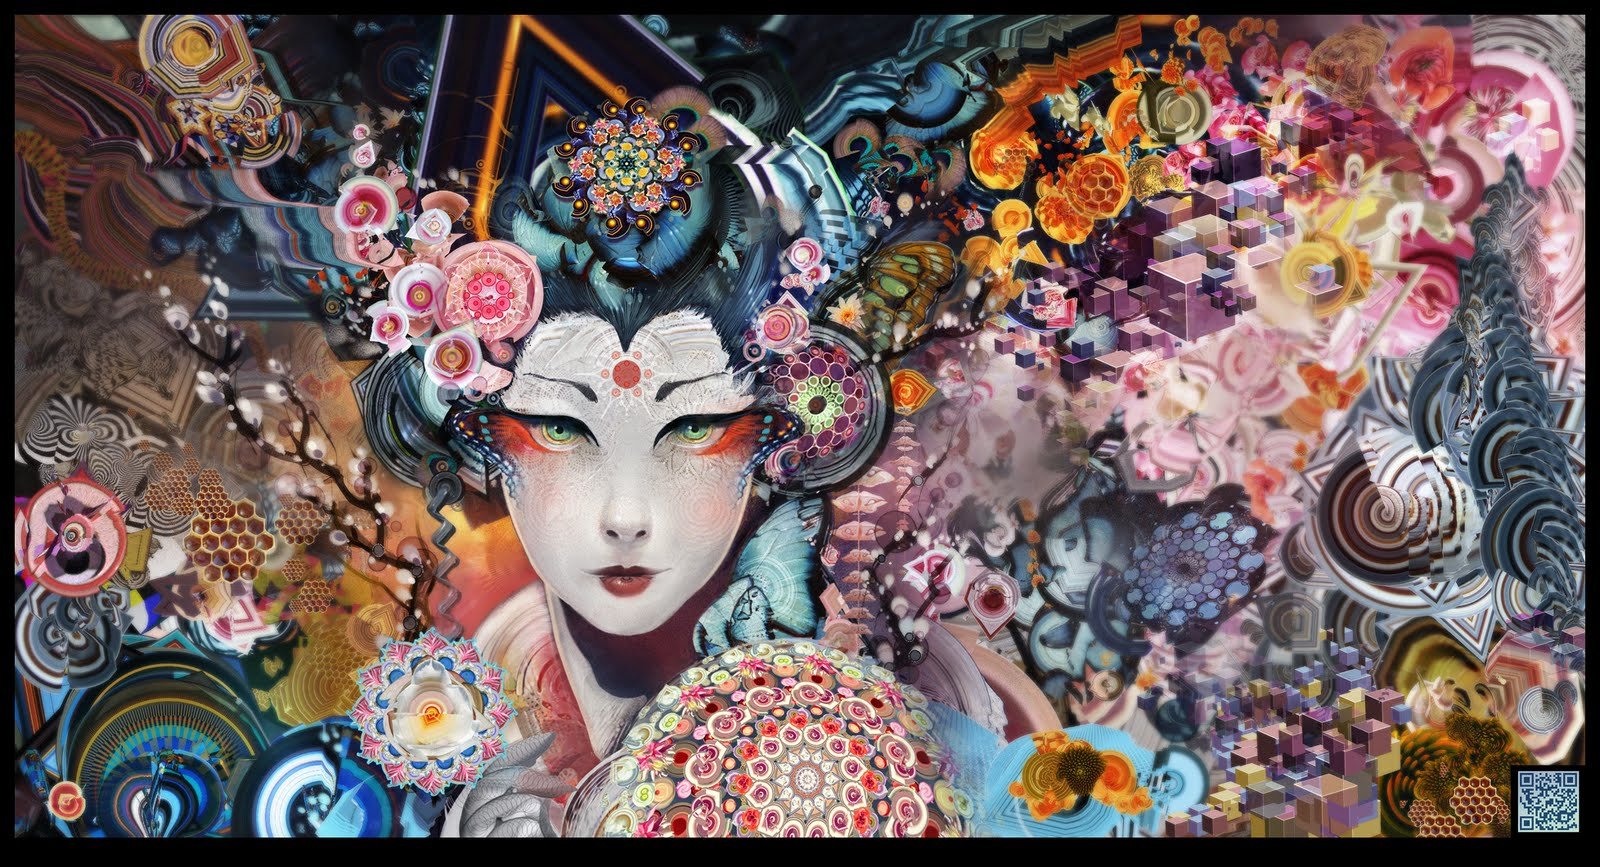 geisha wallpaper geisha wallpaper geisha illustration wallpaper geisha 1600x867